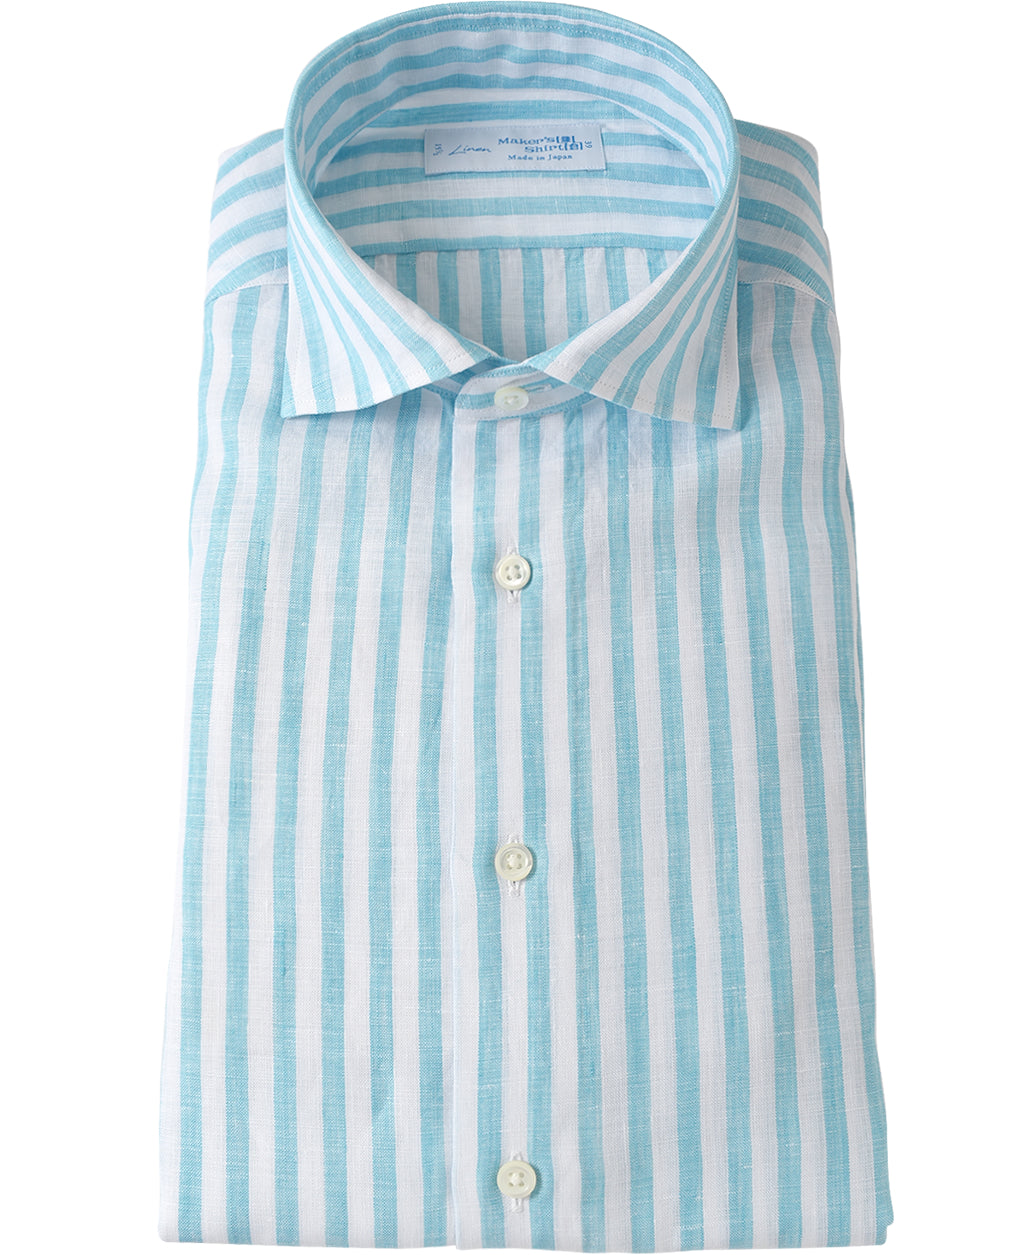 Blue stripe linen shirt